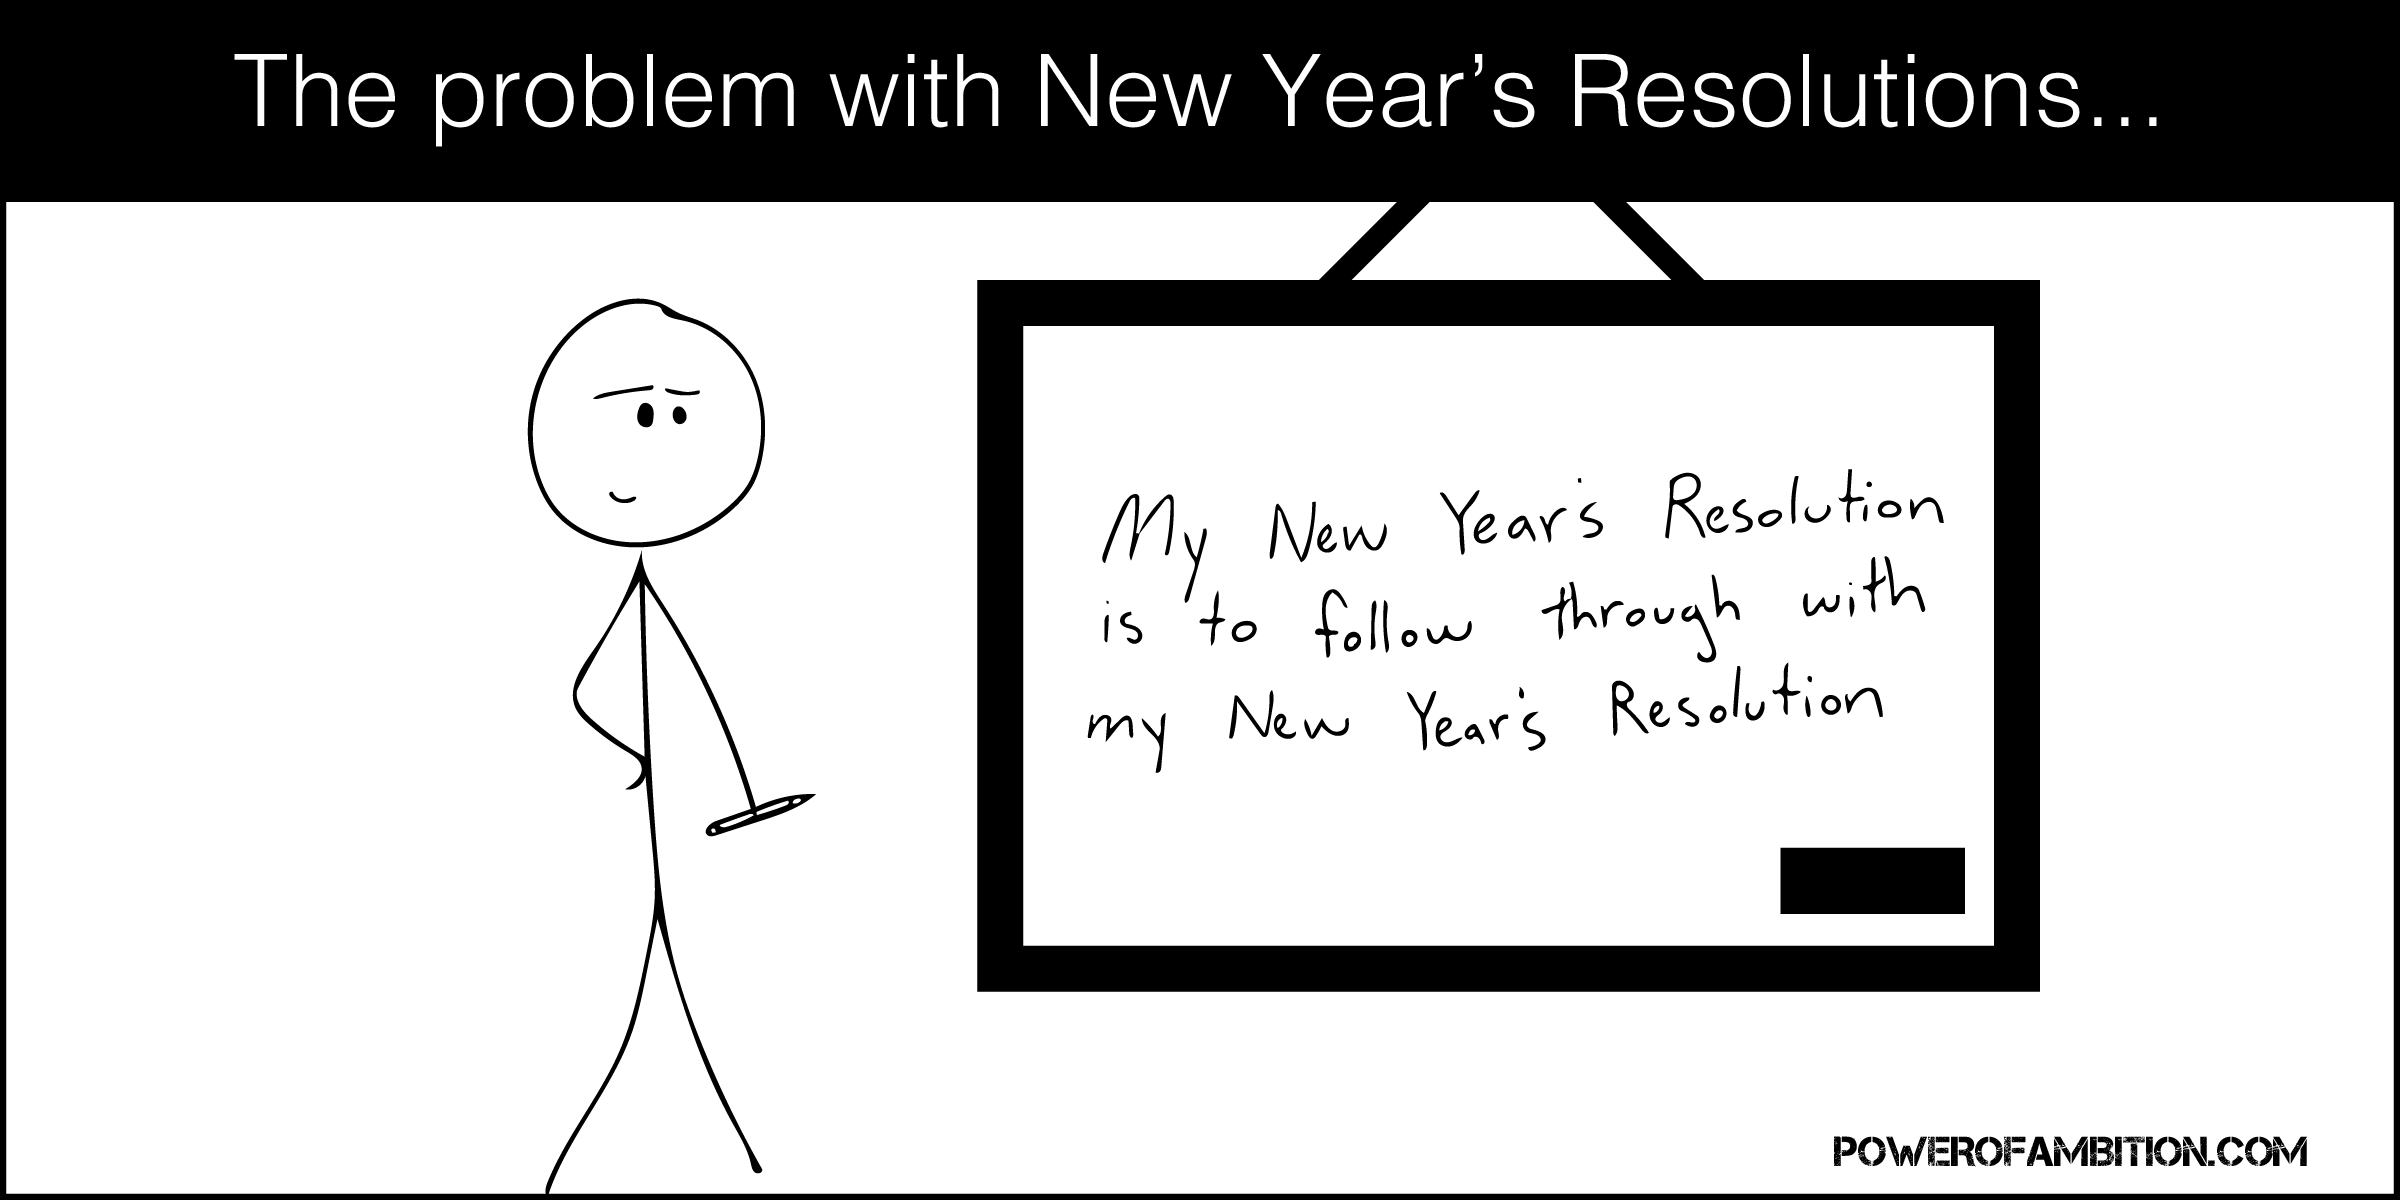 Why New Year's Resolutions Suck - Power of Ambition